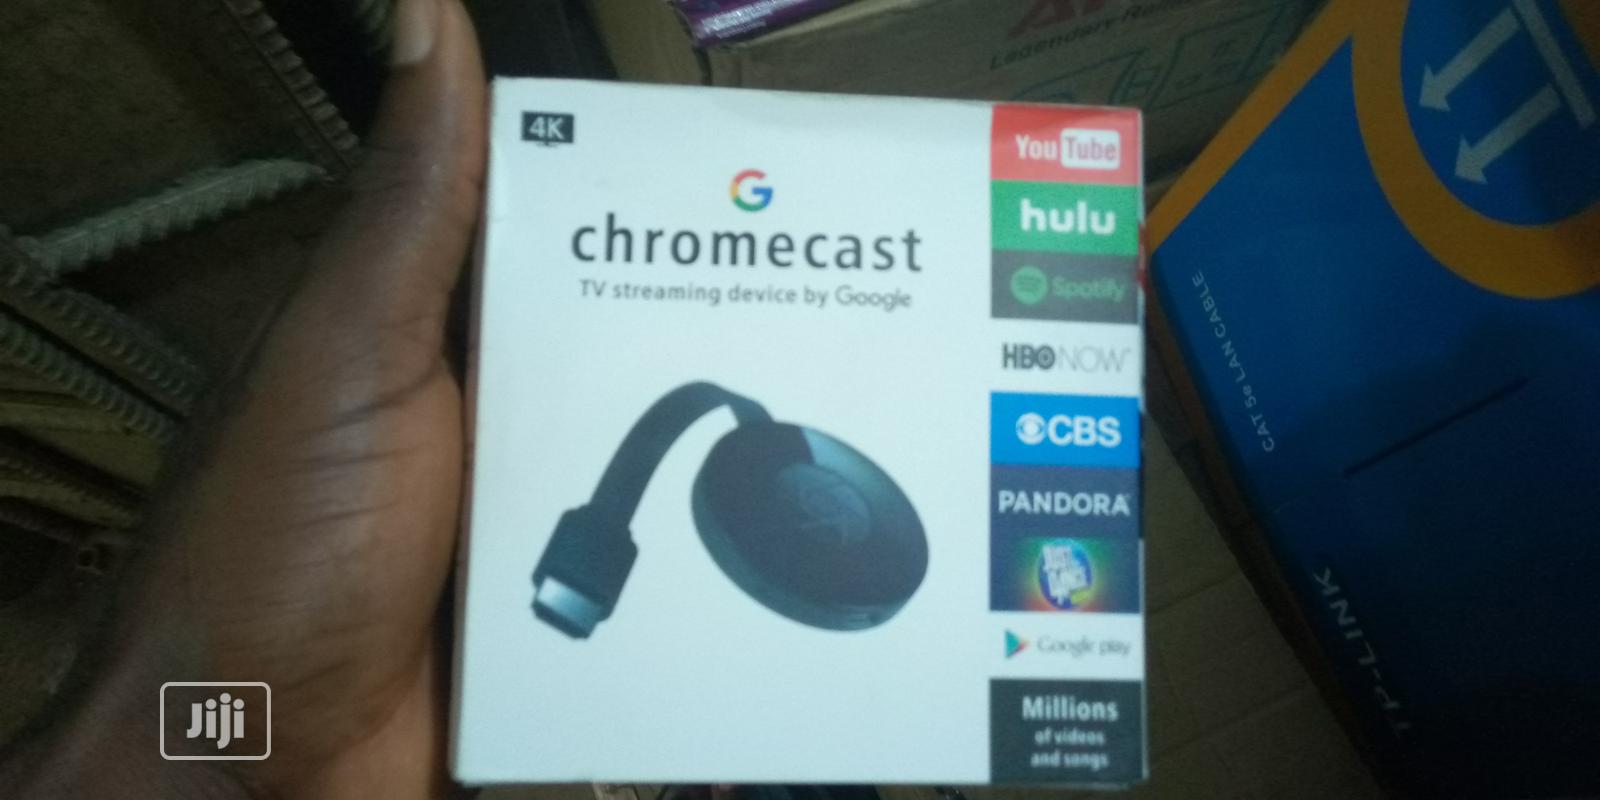 Archive: Google Chromecast TV Streaming Wireless Miracast Airplay